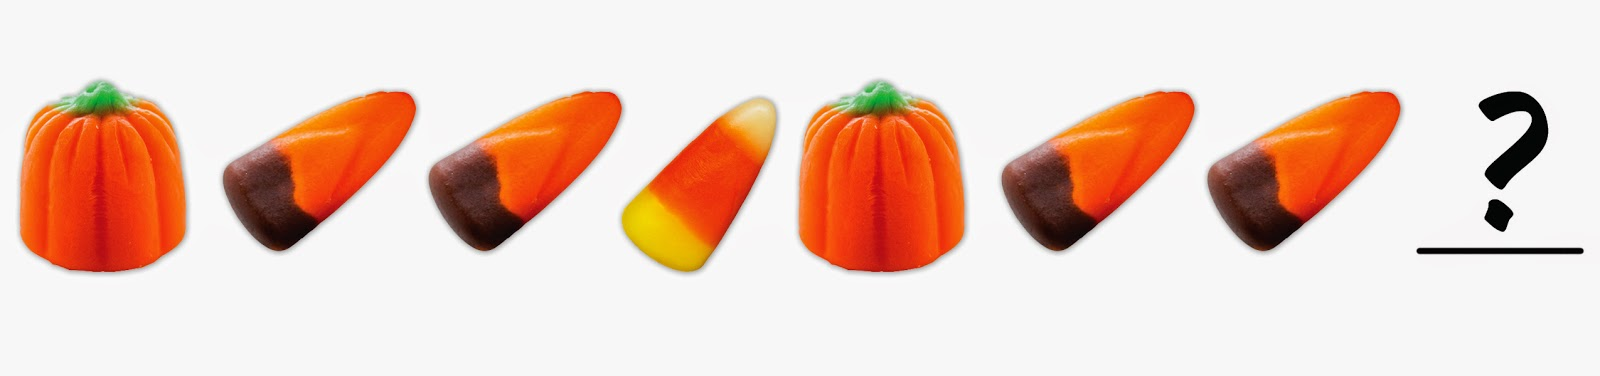 Candy Corn Patters | Remedia Publications' Blog